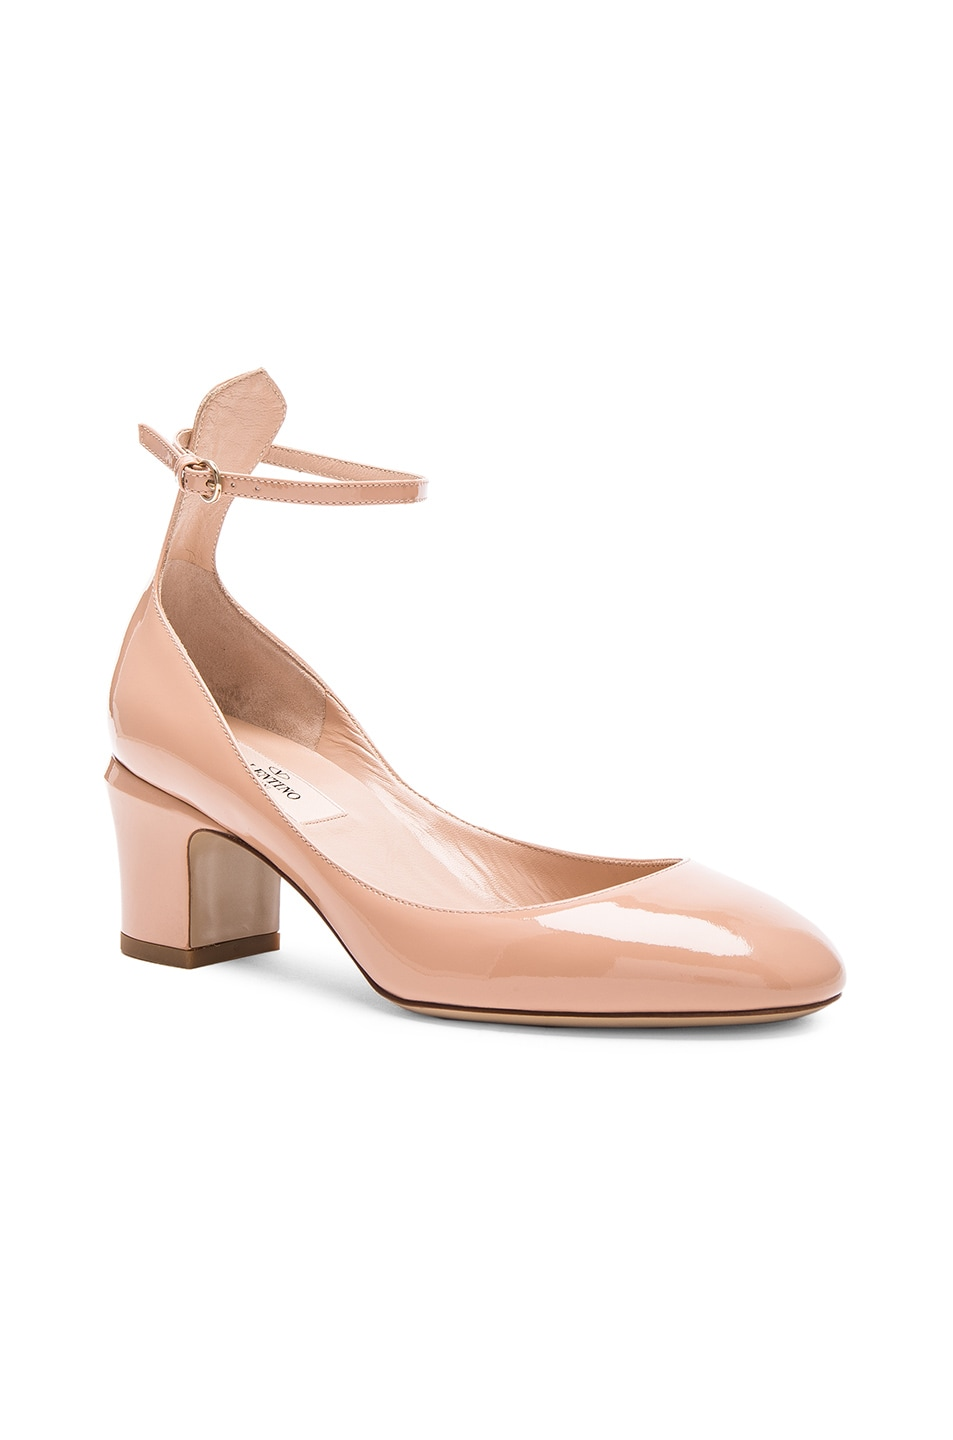 Image 2 of Valentino Patent Leather Tan-Go Pumps in Nude